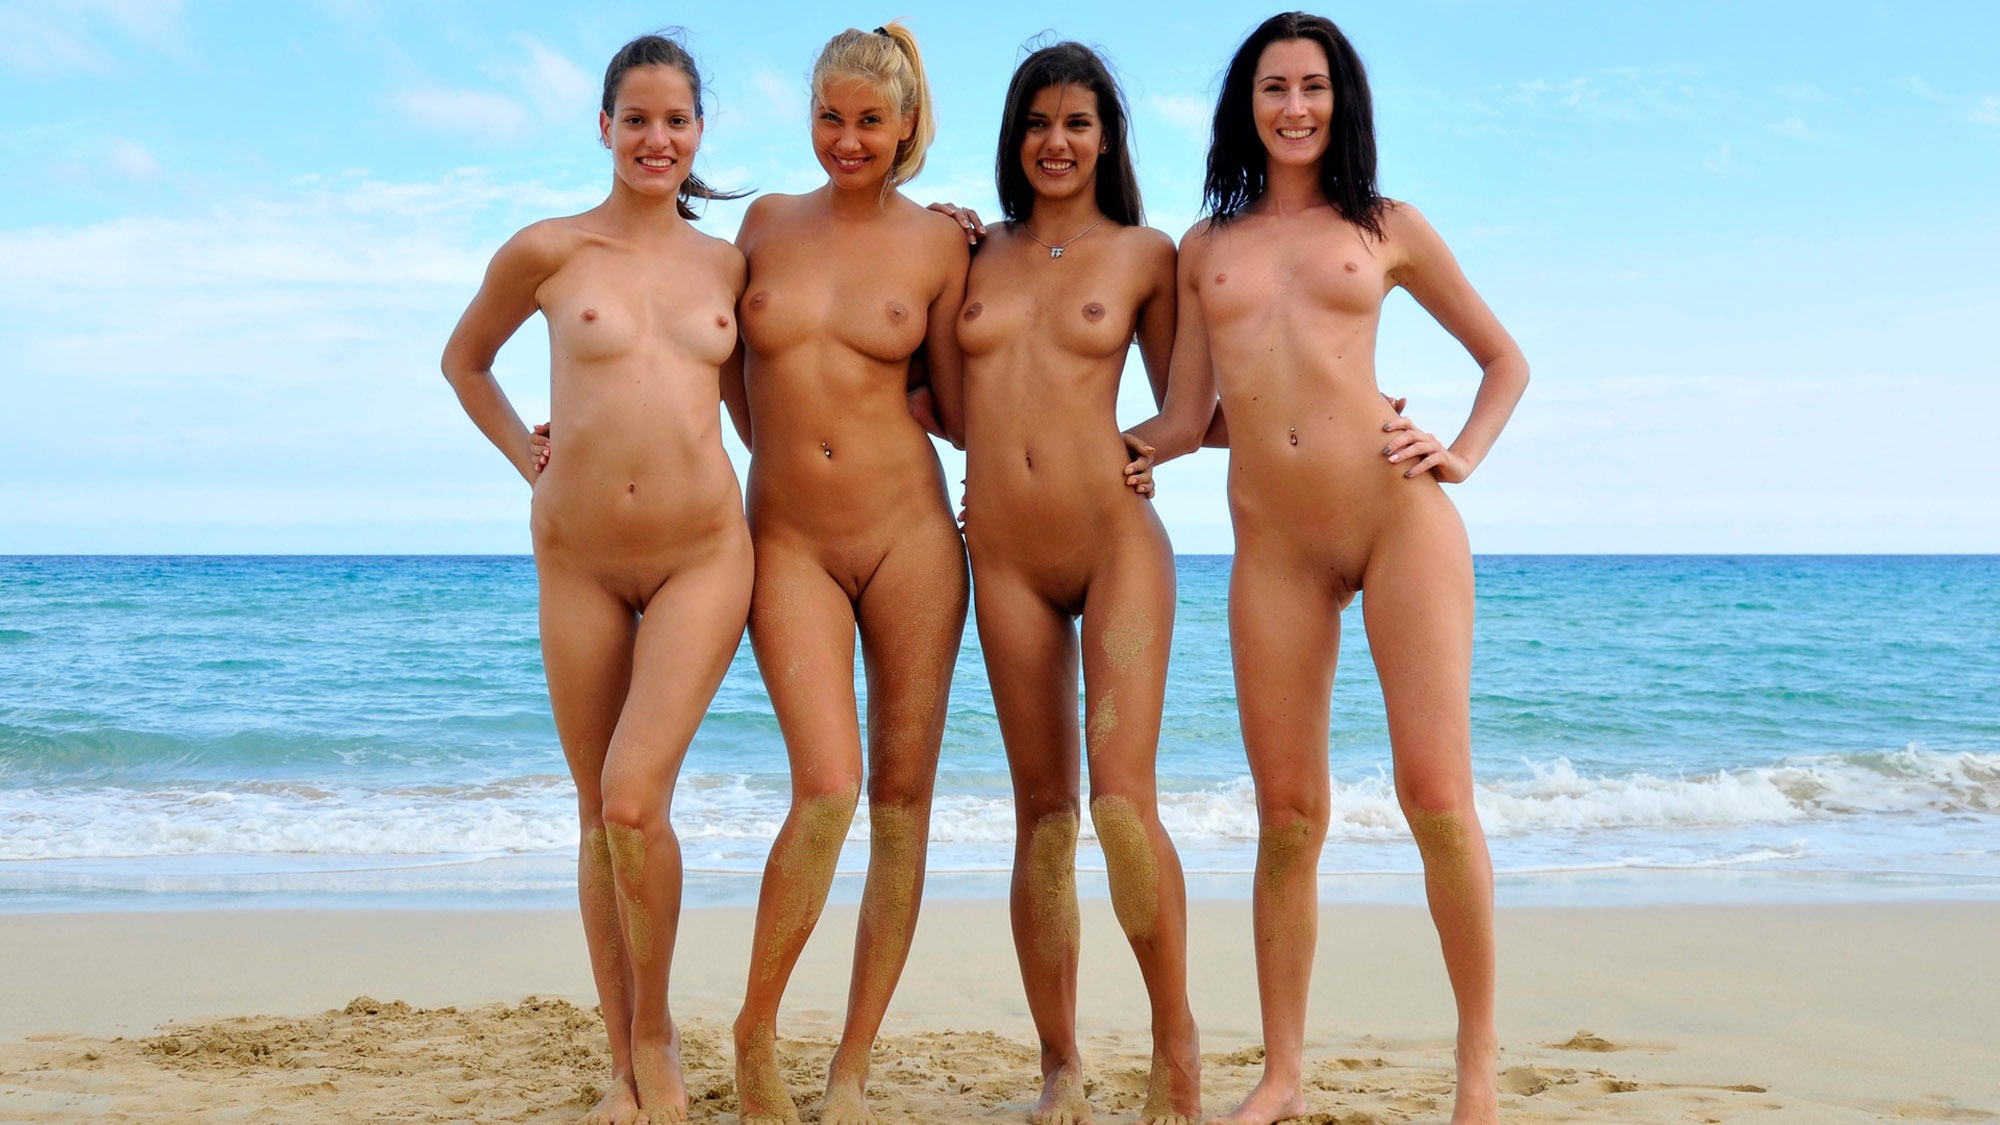 Your spank naked hot horny girls at beach